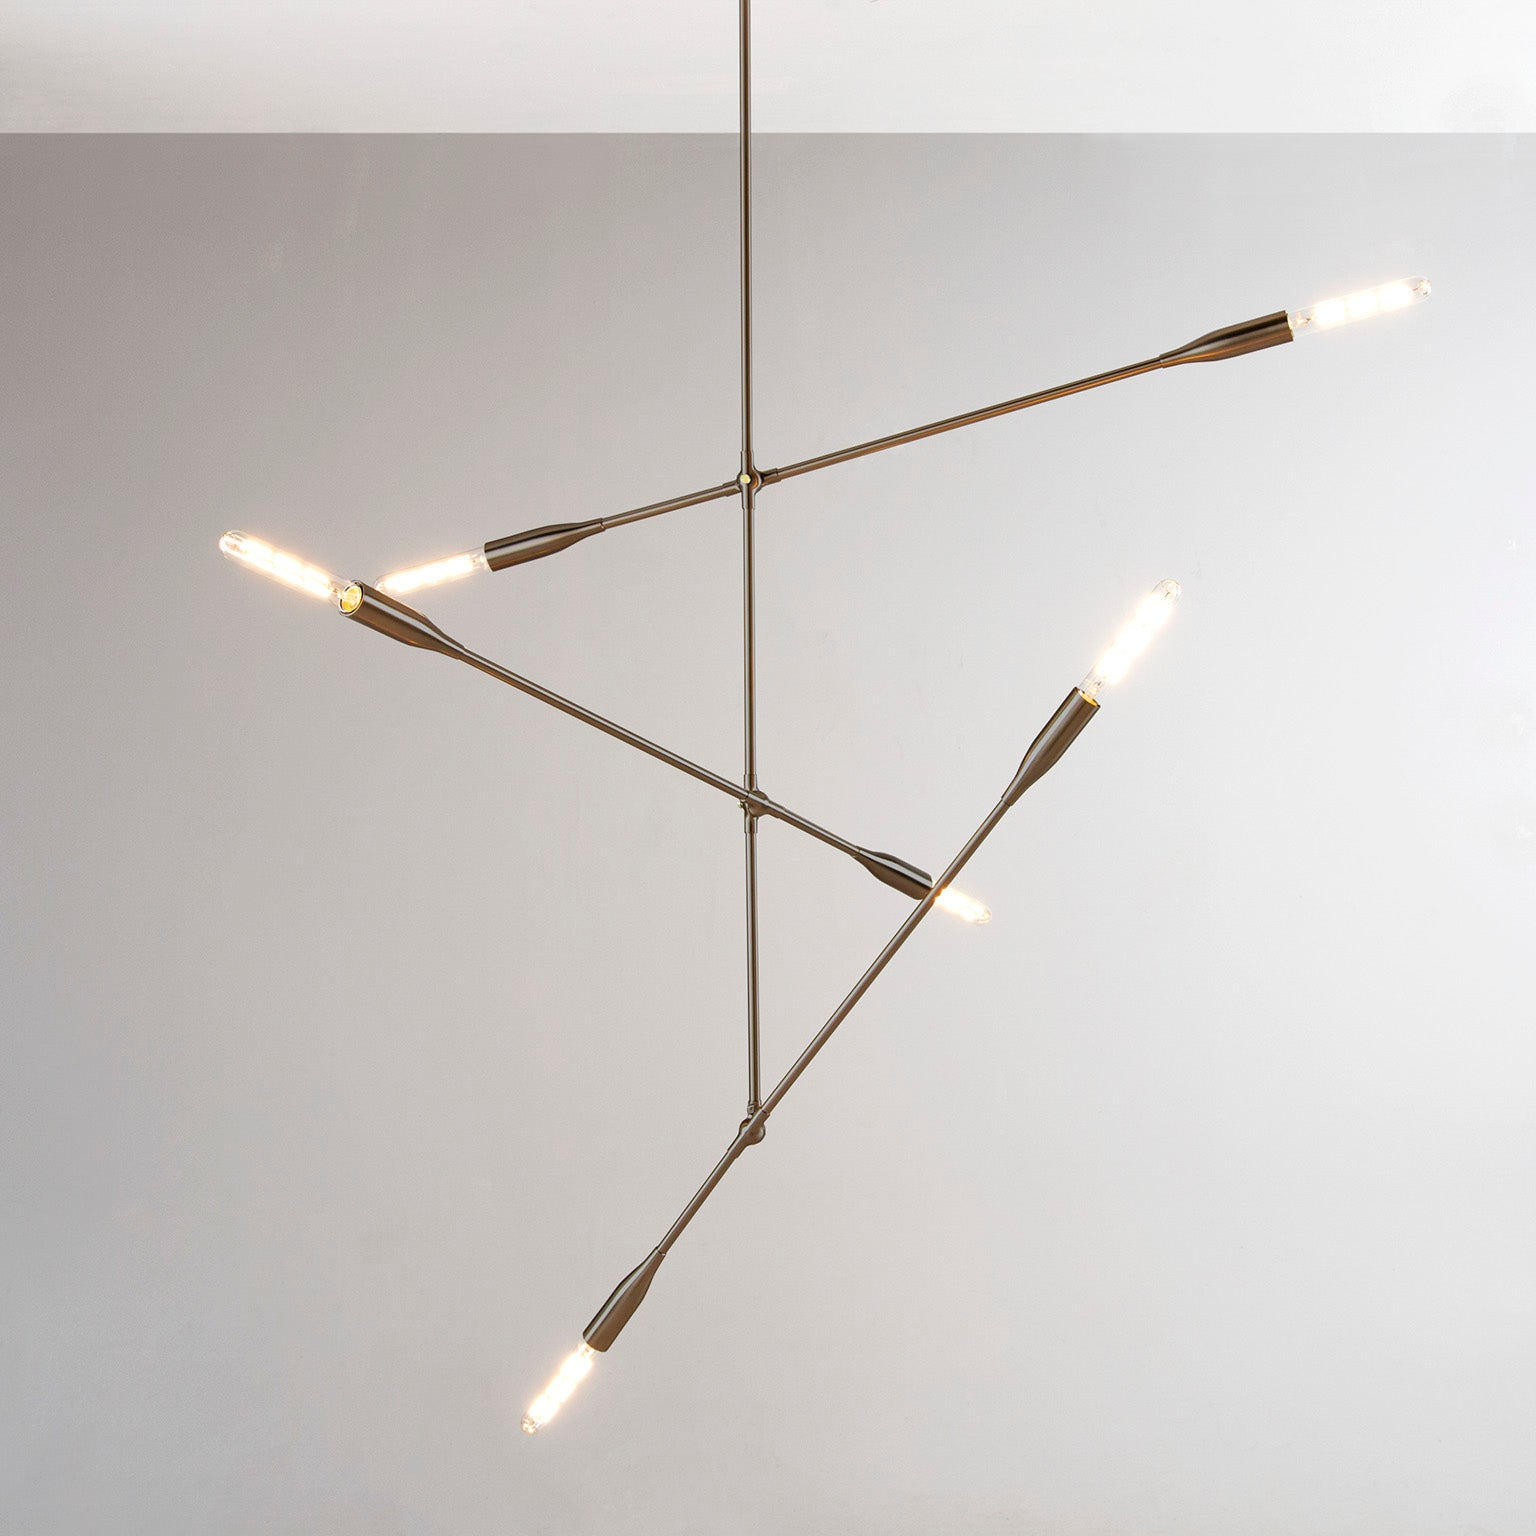 Sorenthia 3-Arm Contemporary Pendant Light Fixture in Oil Rubbed Brass by Studio DUNN